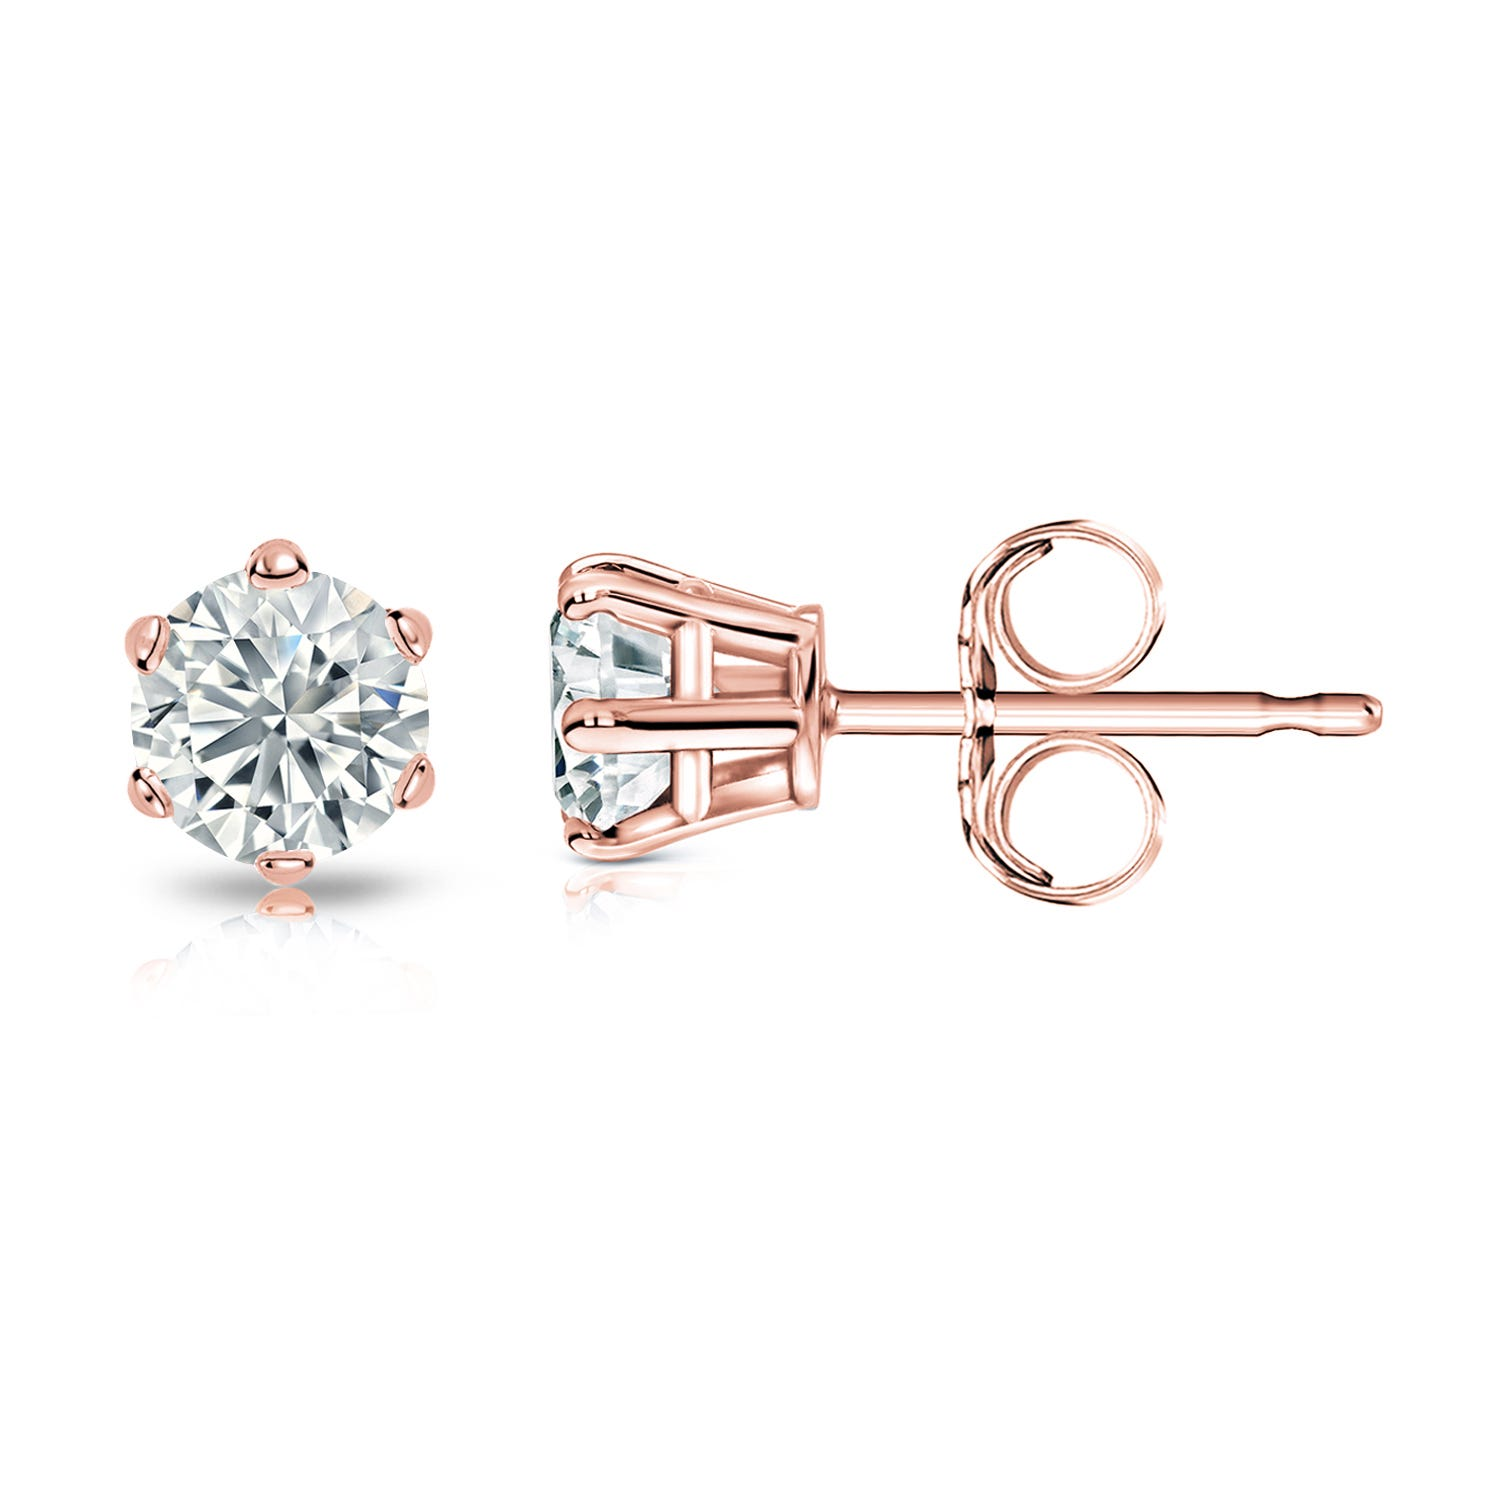 Round Diamond 1/2ctw. (IJ-SI1) Solitaire Stud 6-Prong Earrings in 14K Rose Gold